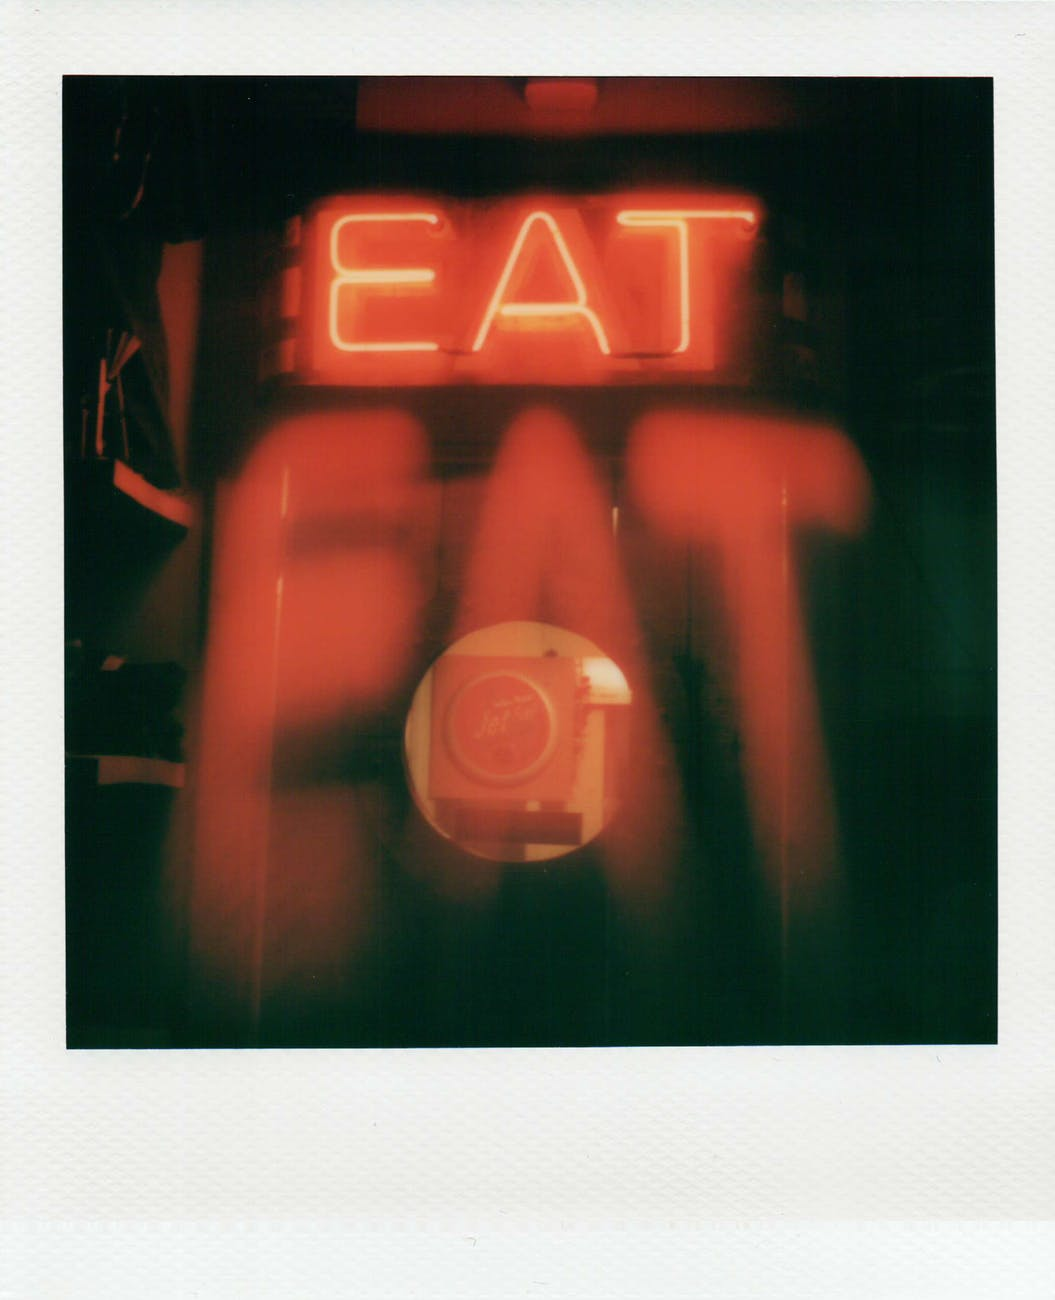 instant photo of a red neon sign